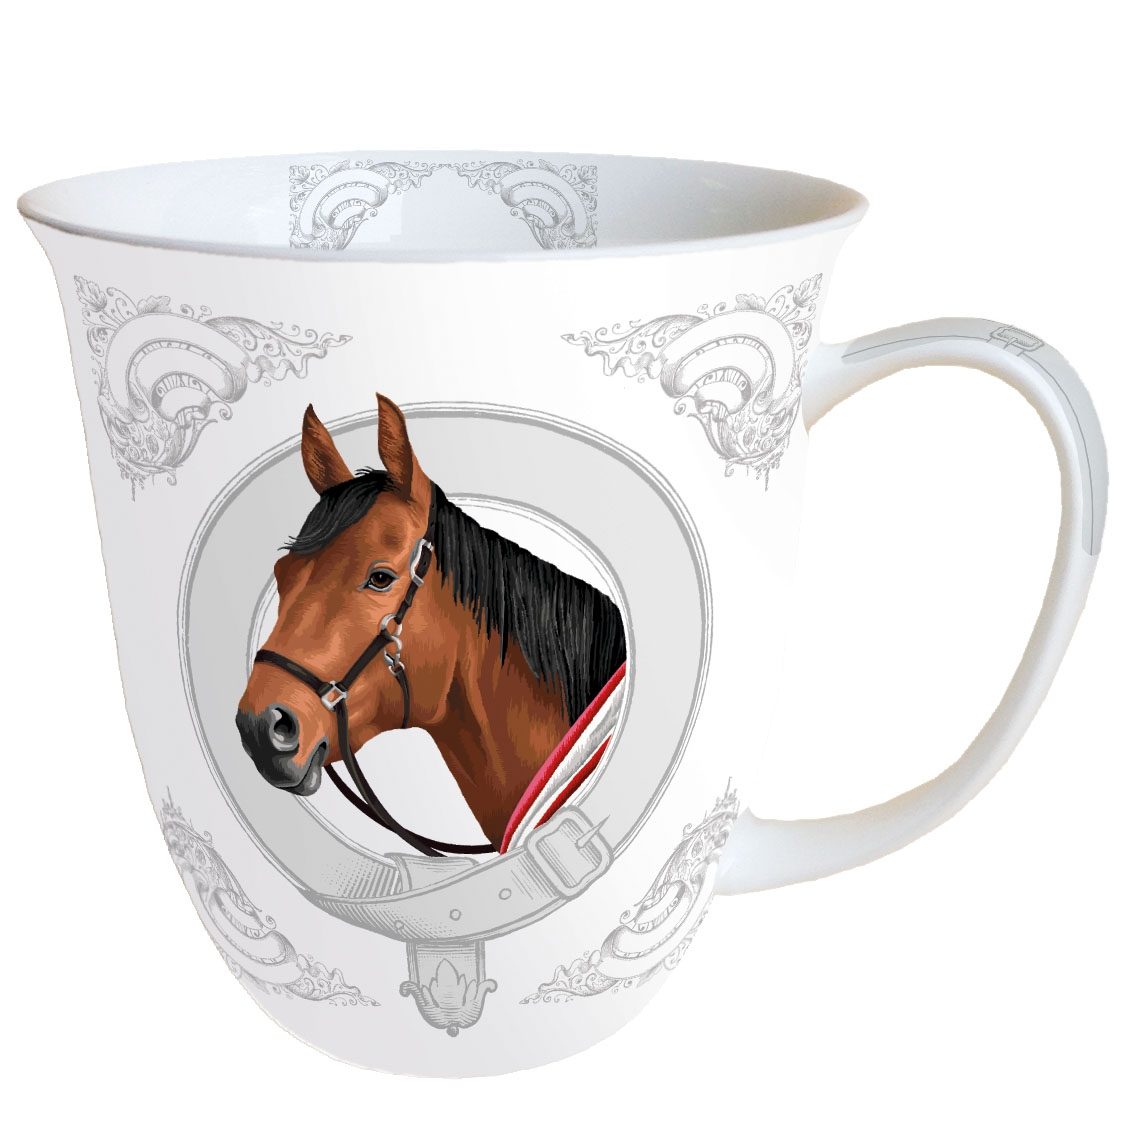 Puchar Porcelany - Classic Horse